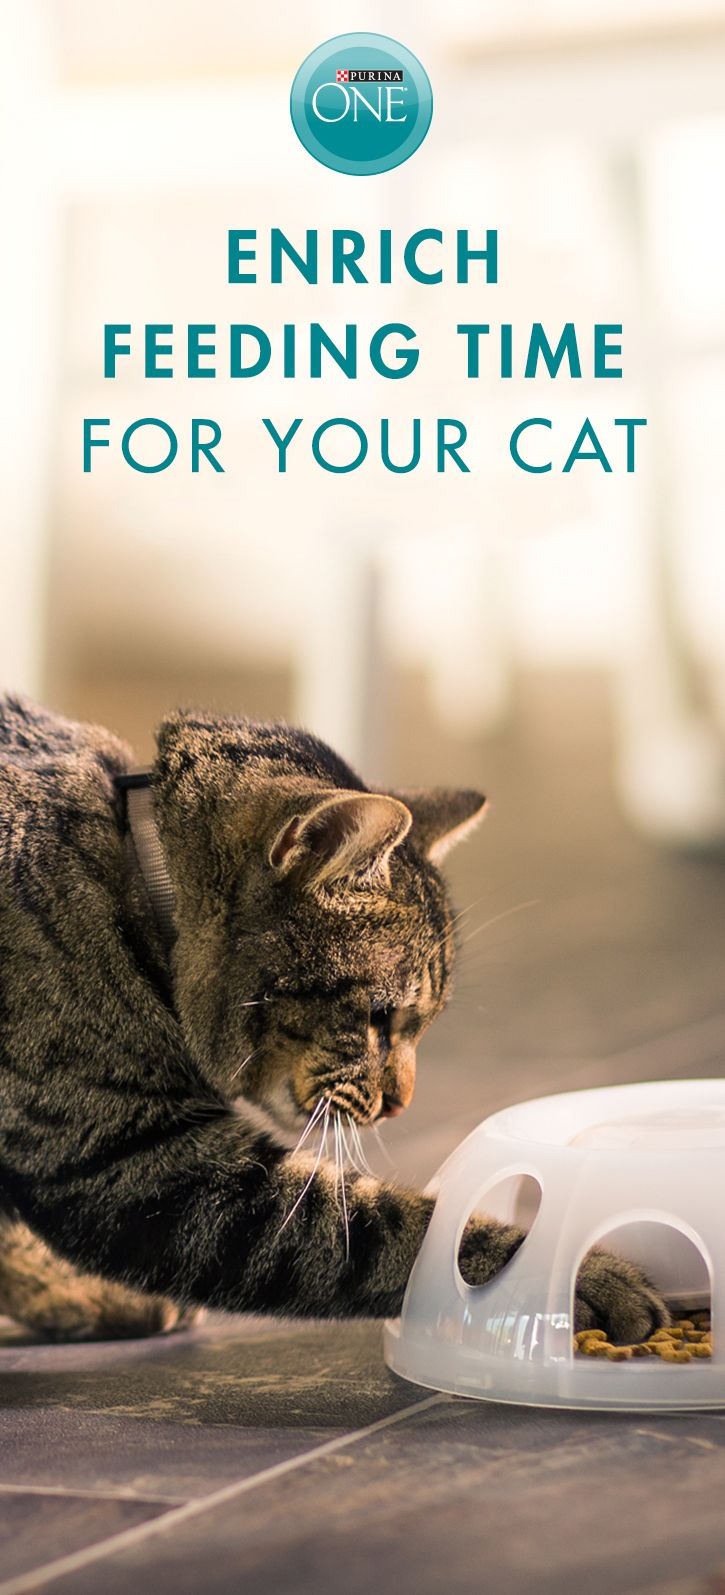 Put a little challenge on your cat's menu by hiding a small portion of the crunchy bites & meaty tender morsels of Purina ONE Tender Selects Blend With Real Chicken around the house or in a puzzle feeder, to appeal to your cat's desire for physical and mental stimulation during feeding time. With 32g of protein per cup, it provides the protein your cat needs as a carnivore and helps support strong muscles, including a healthy heart. Buy Purina ONE in-store today.